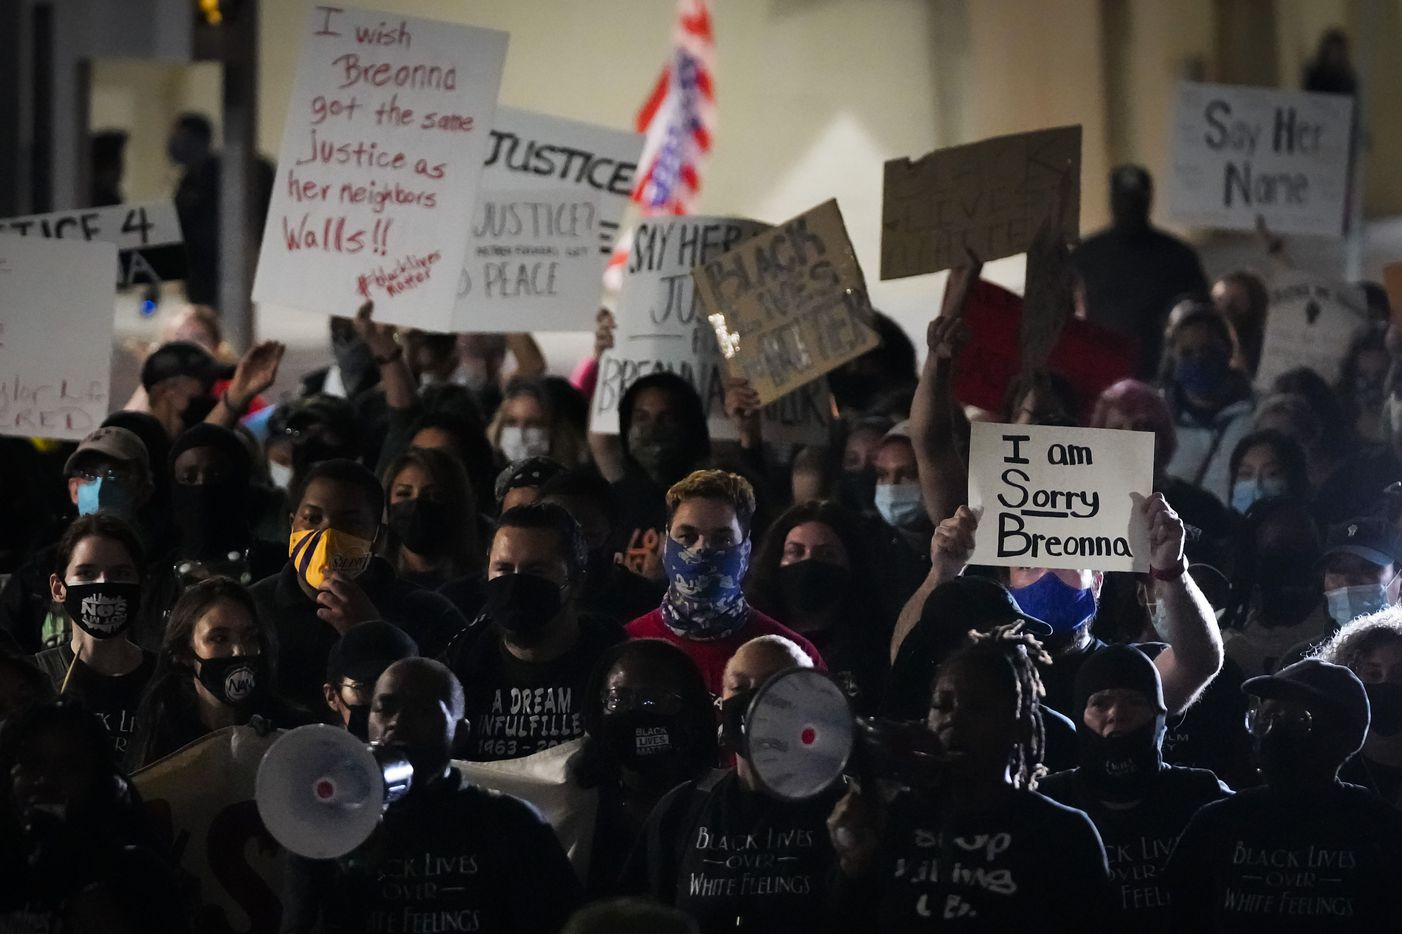 Demonstrators march on Ervay Street near Dallas City Hall after after a Kentucky grand jury brought no charges against Louisville police for the killing of Breonna Taylor on Wednesday, Sept. 23, 2020.